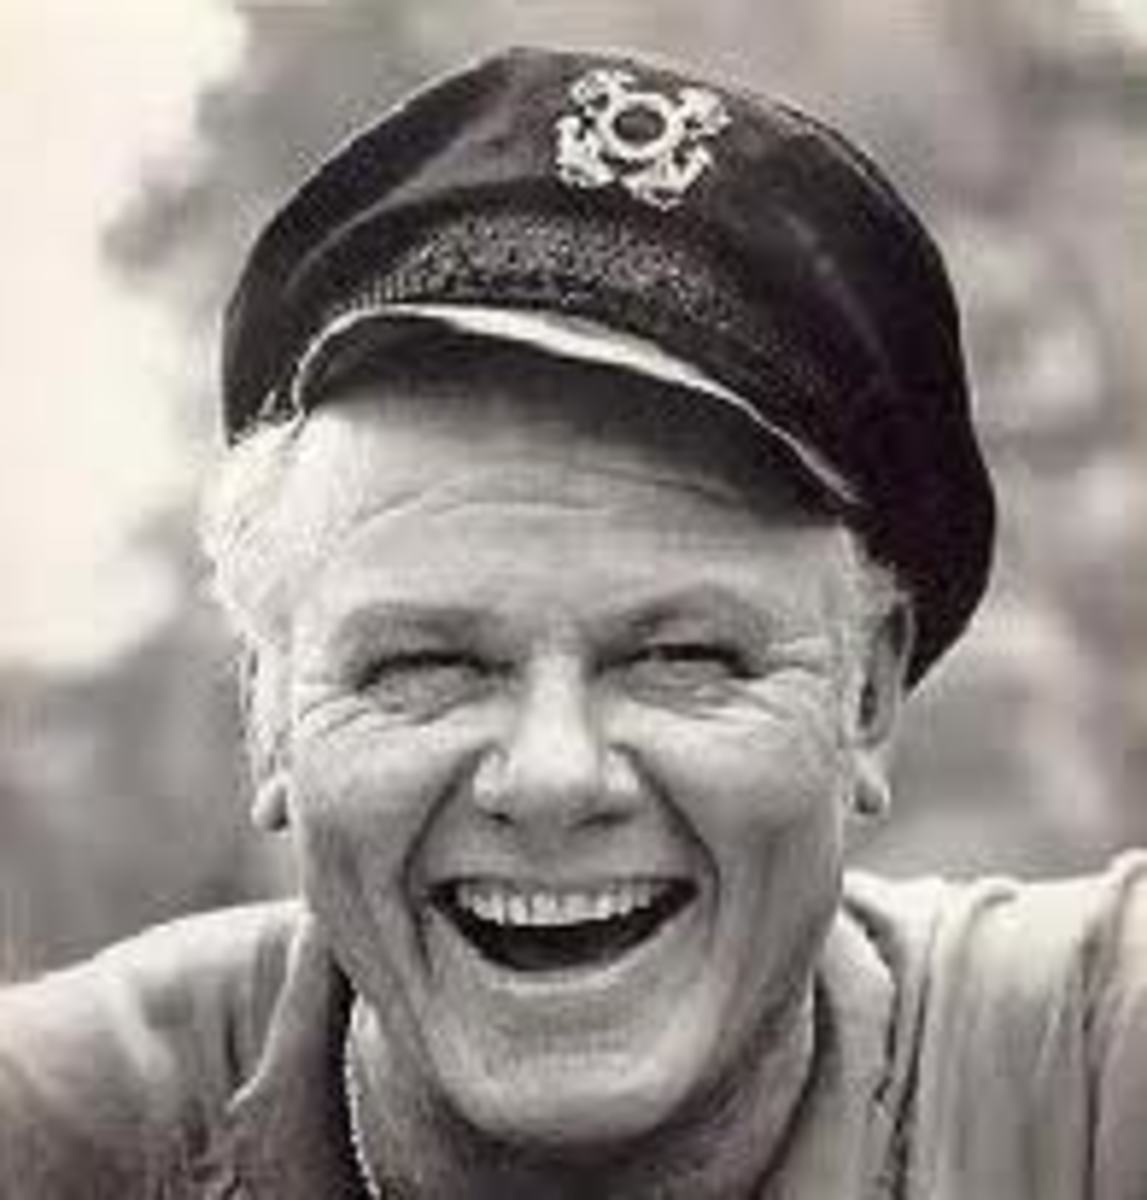 Alan Hale jr. looking as happy as ever.